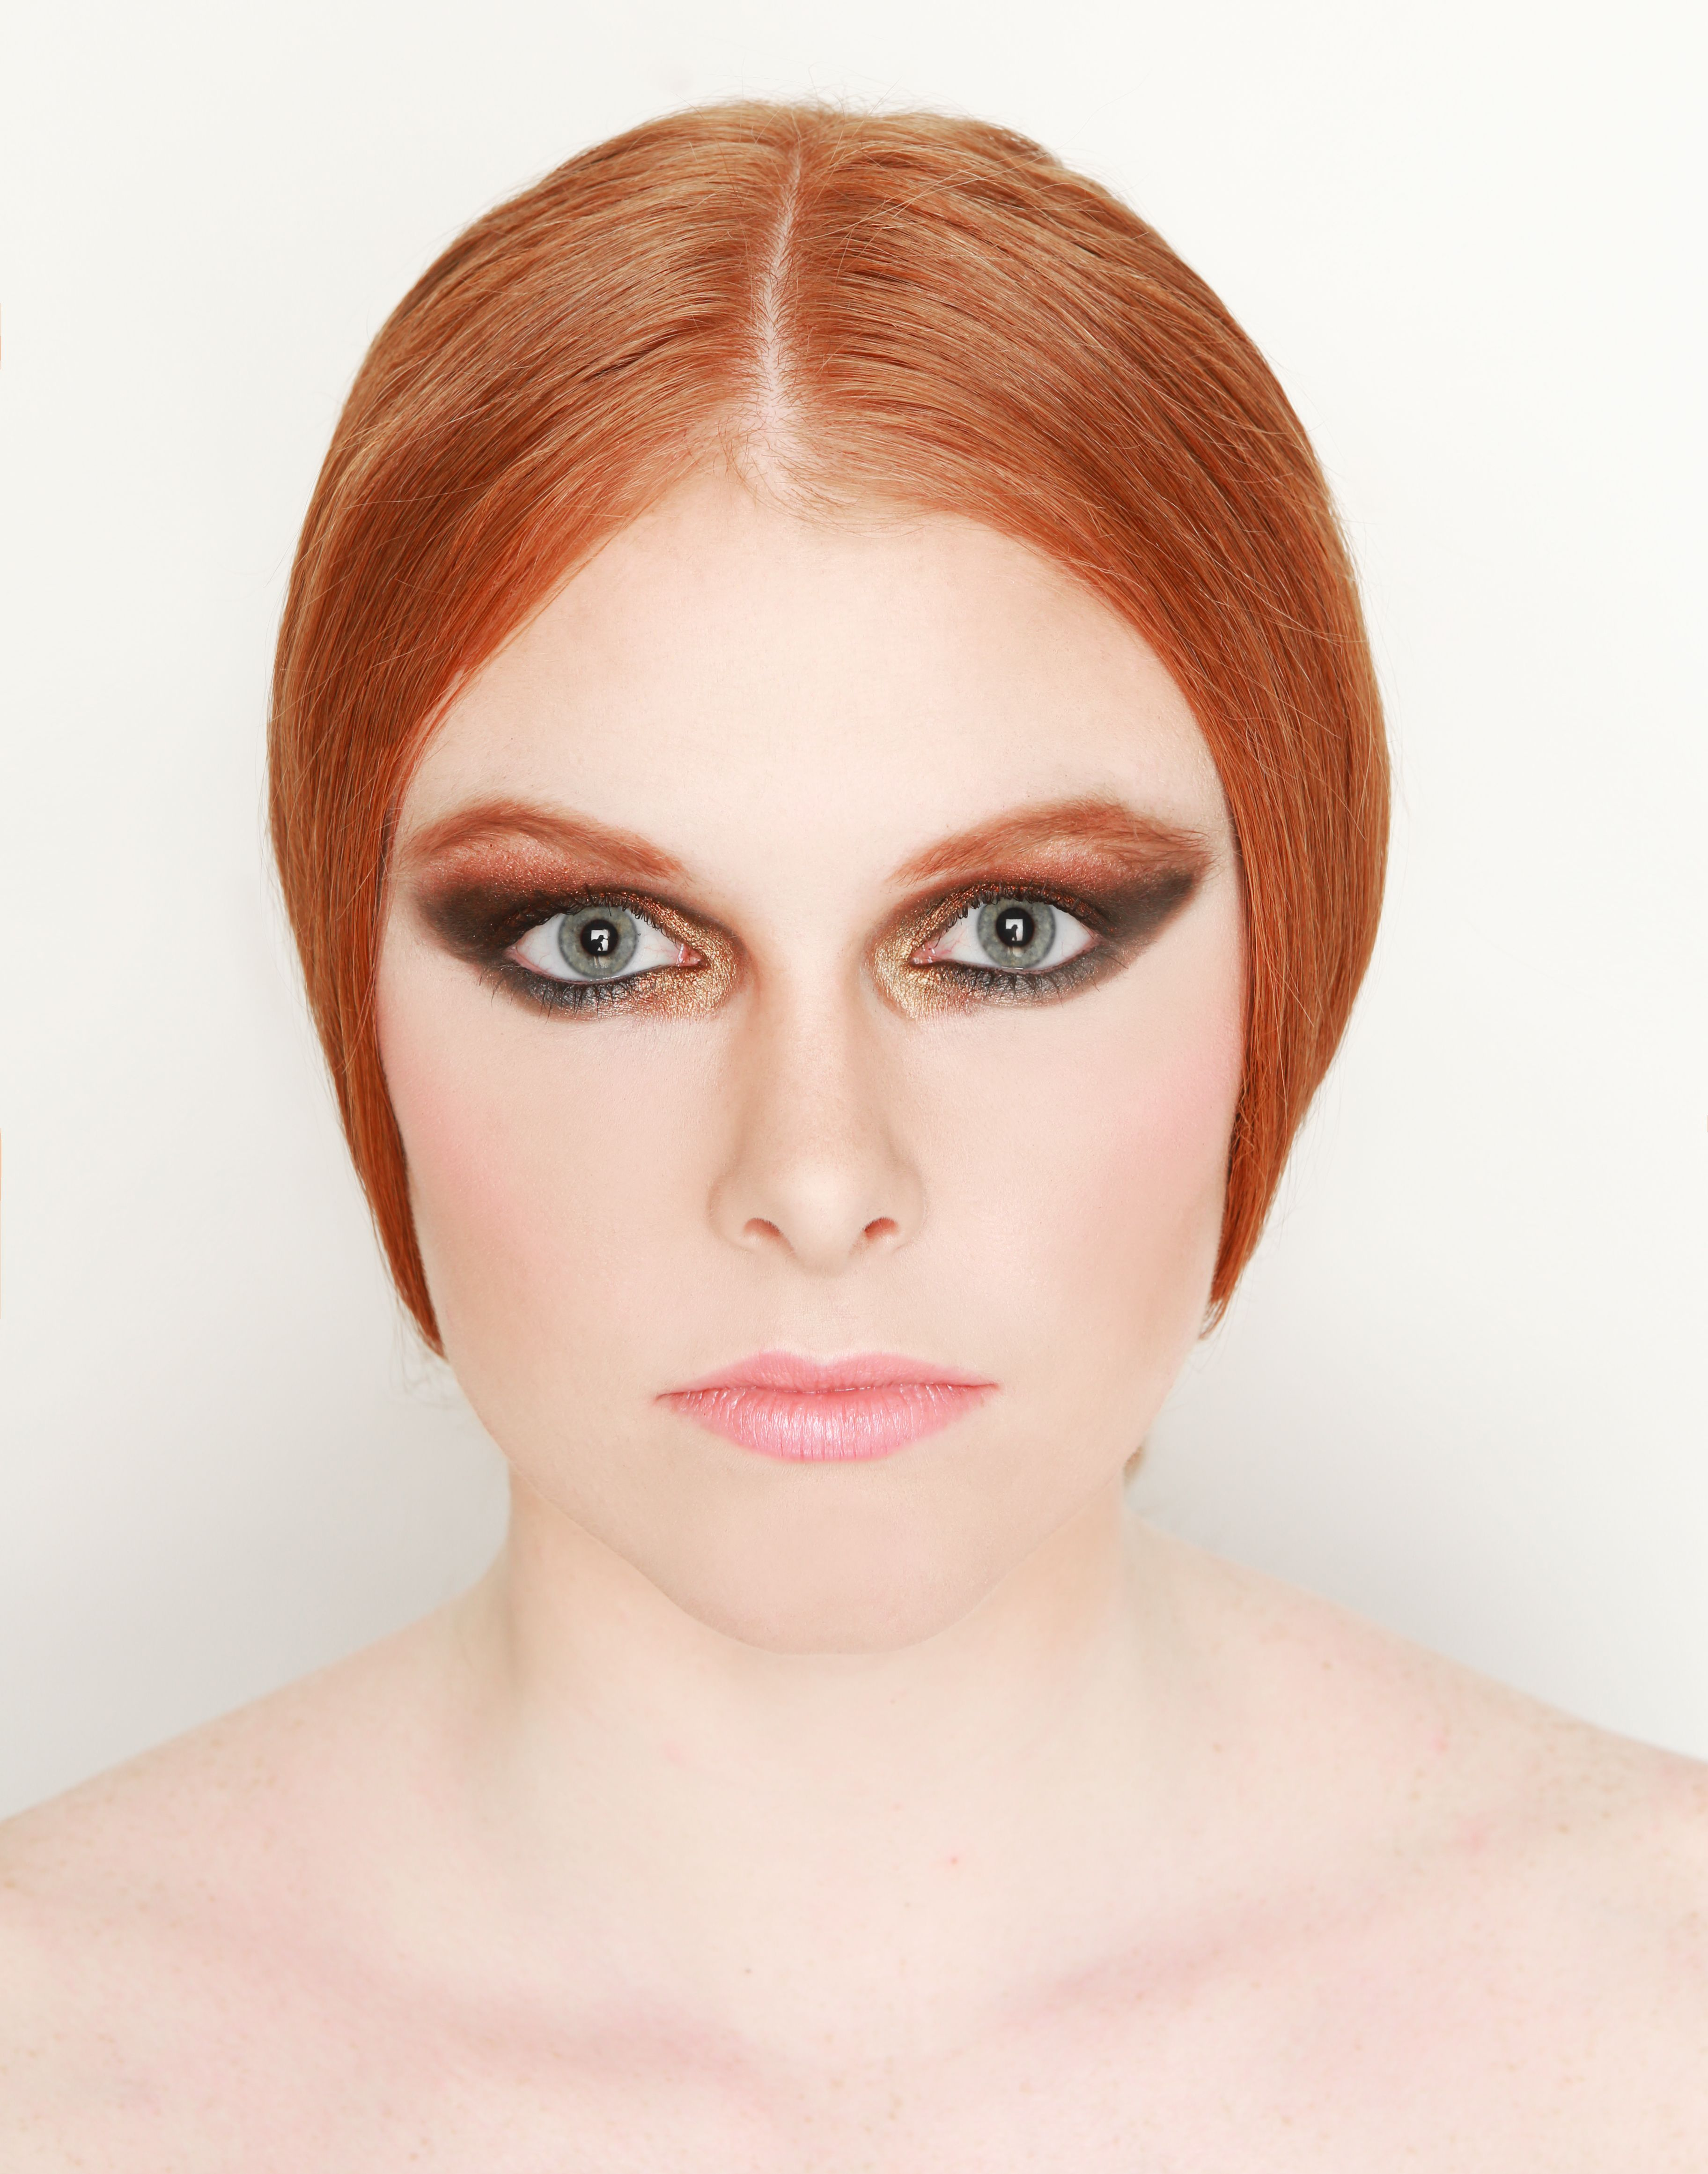 Learn more about our makeup academy at